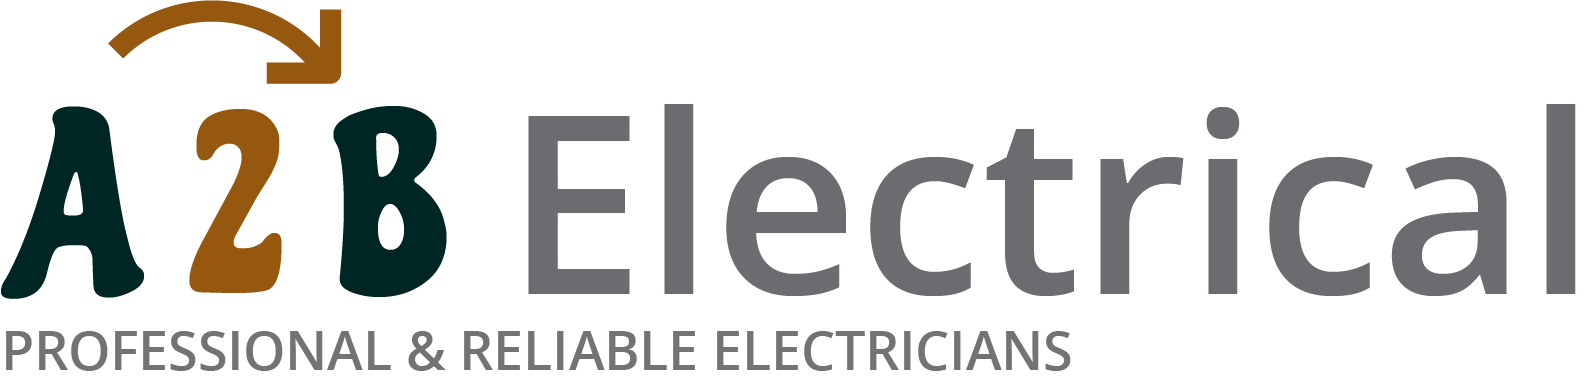 If you have electrical wiring problems in Acton, we can provide an electrician to have a look for you.